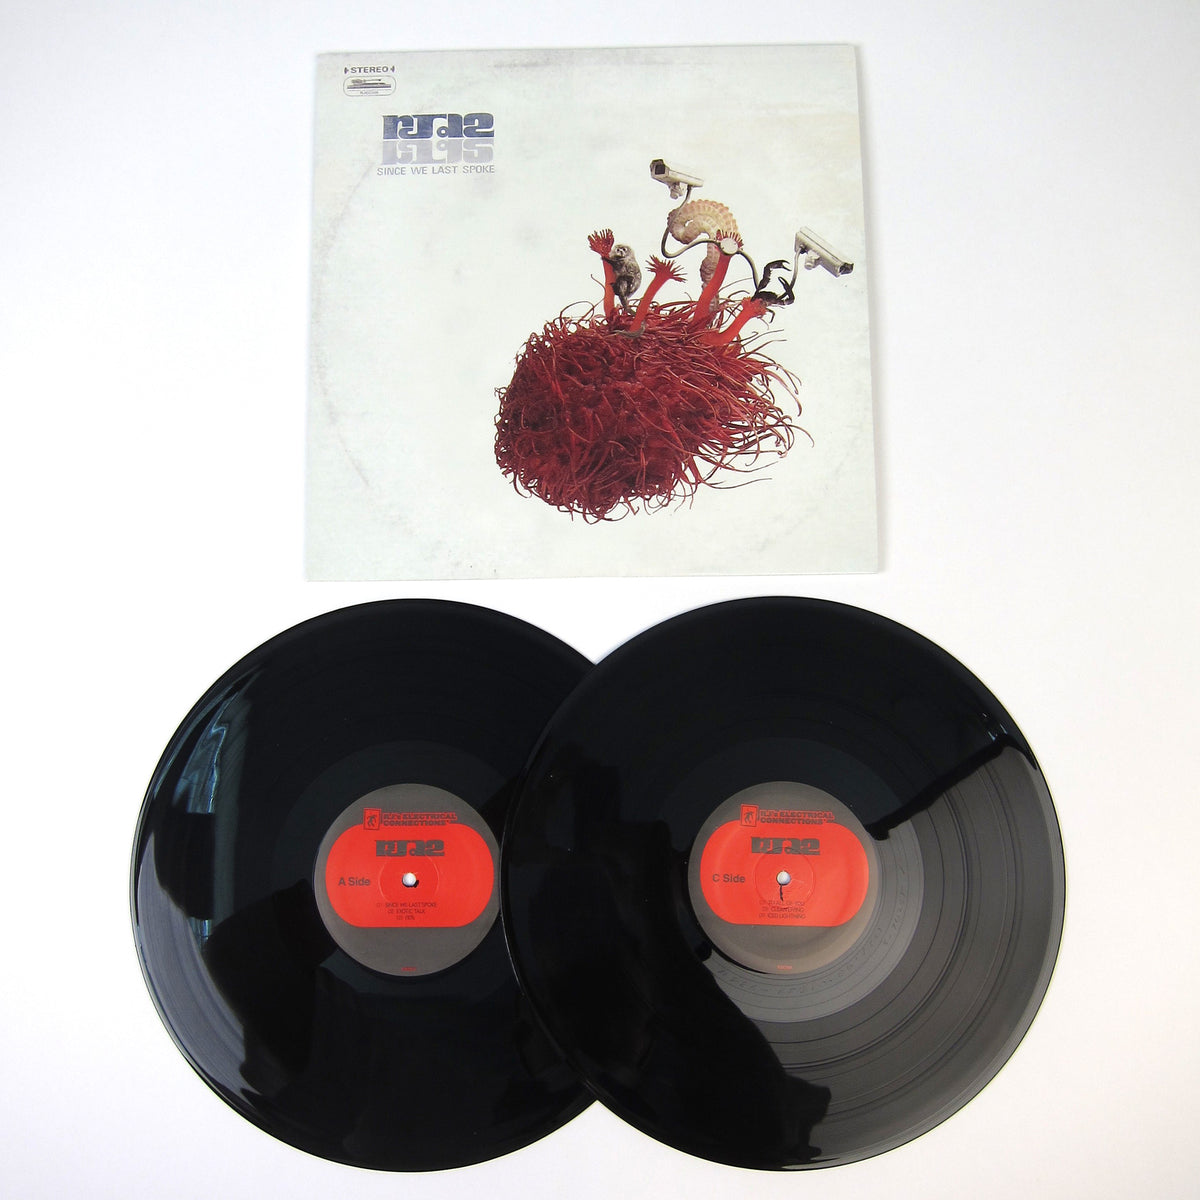 RJD2: Since We Last Spoke Vinyl 2LP